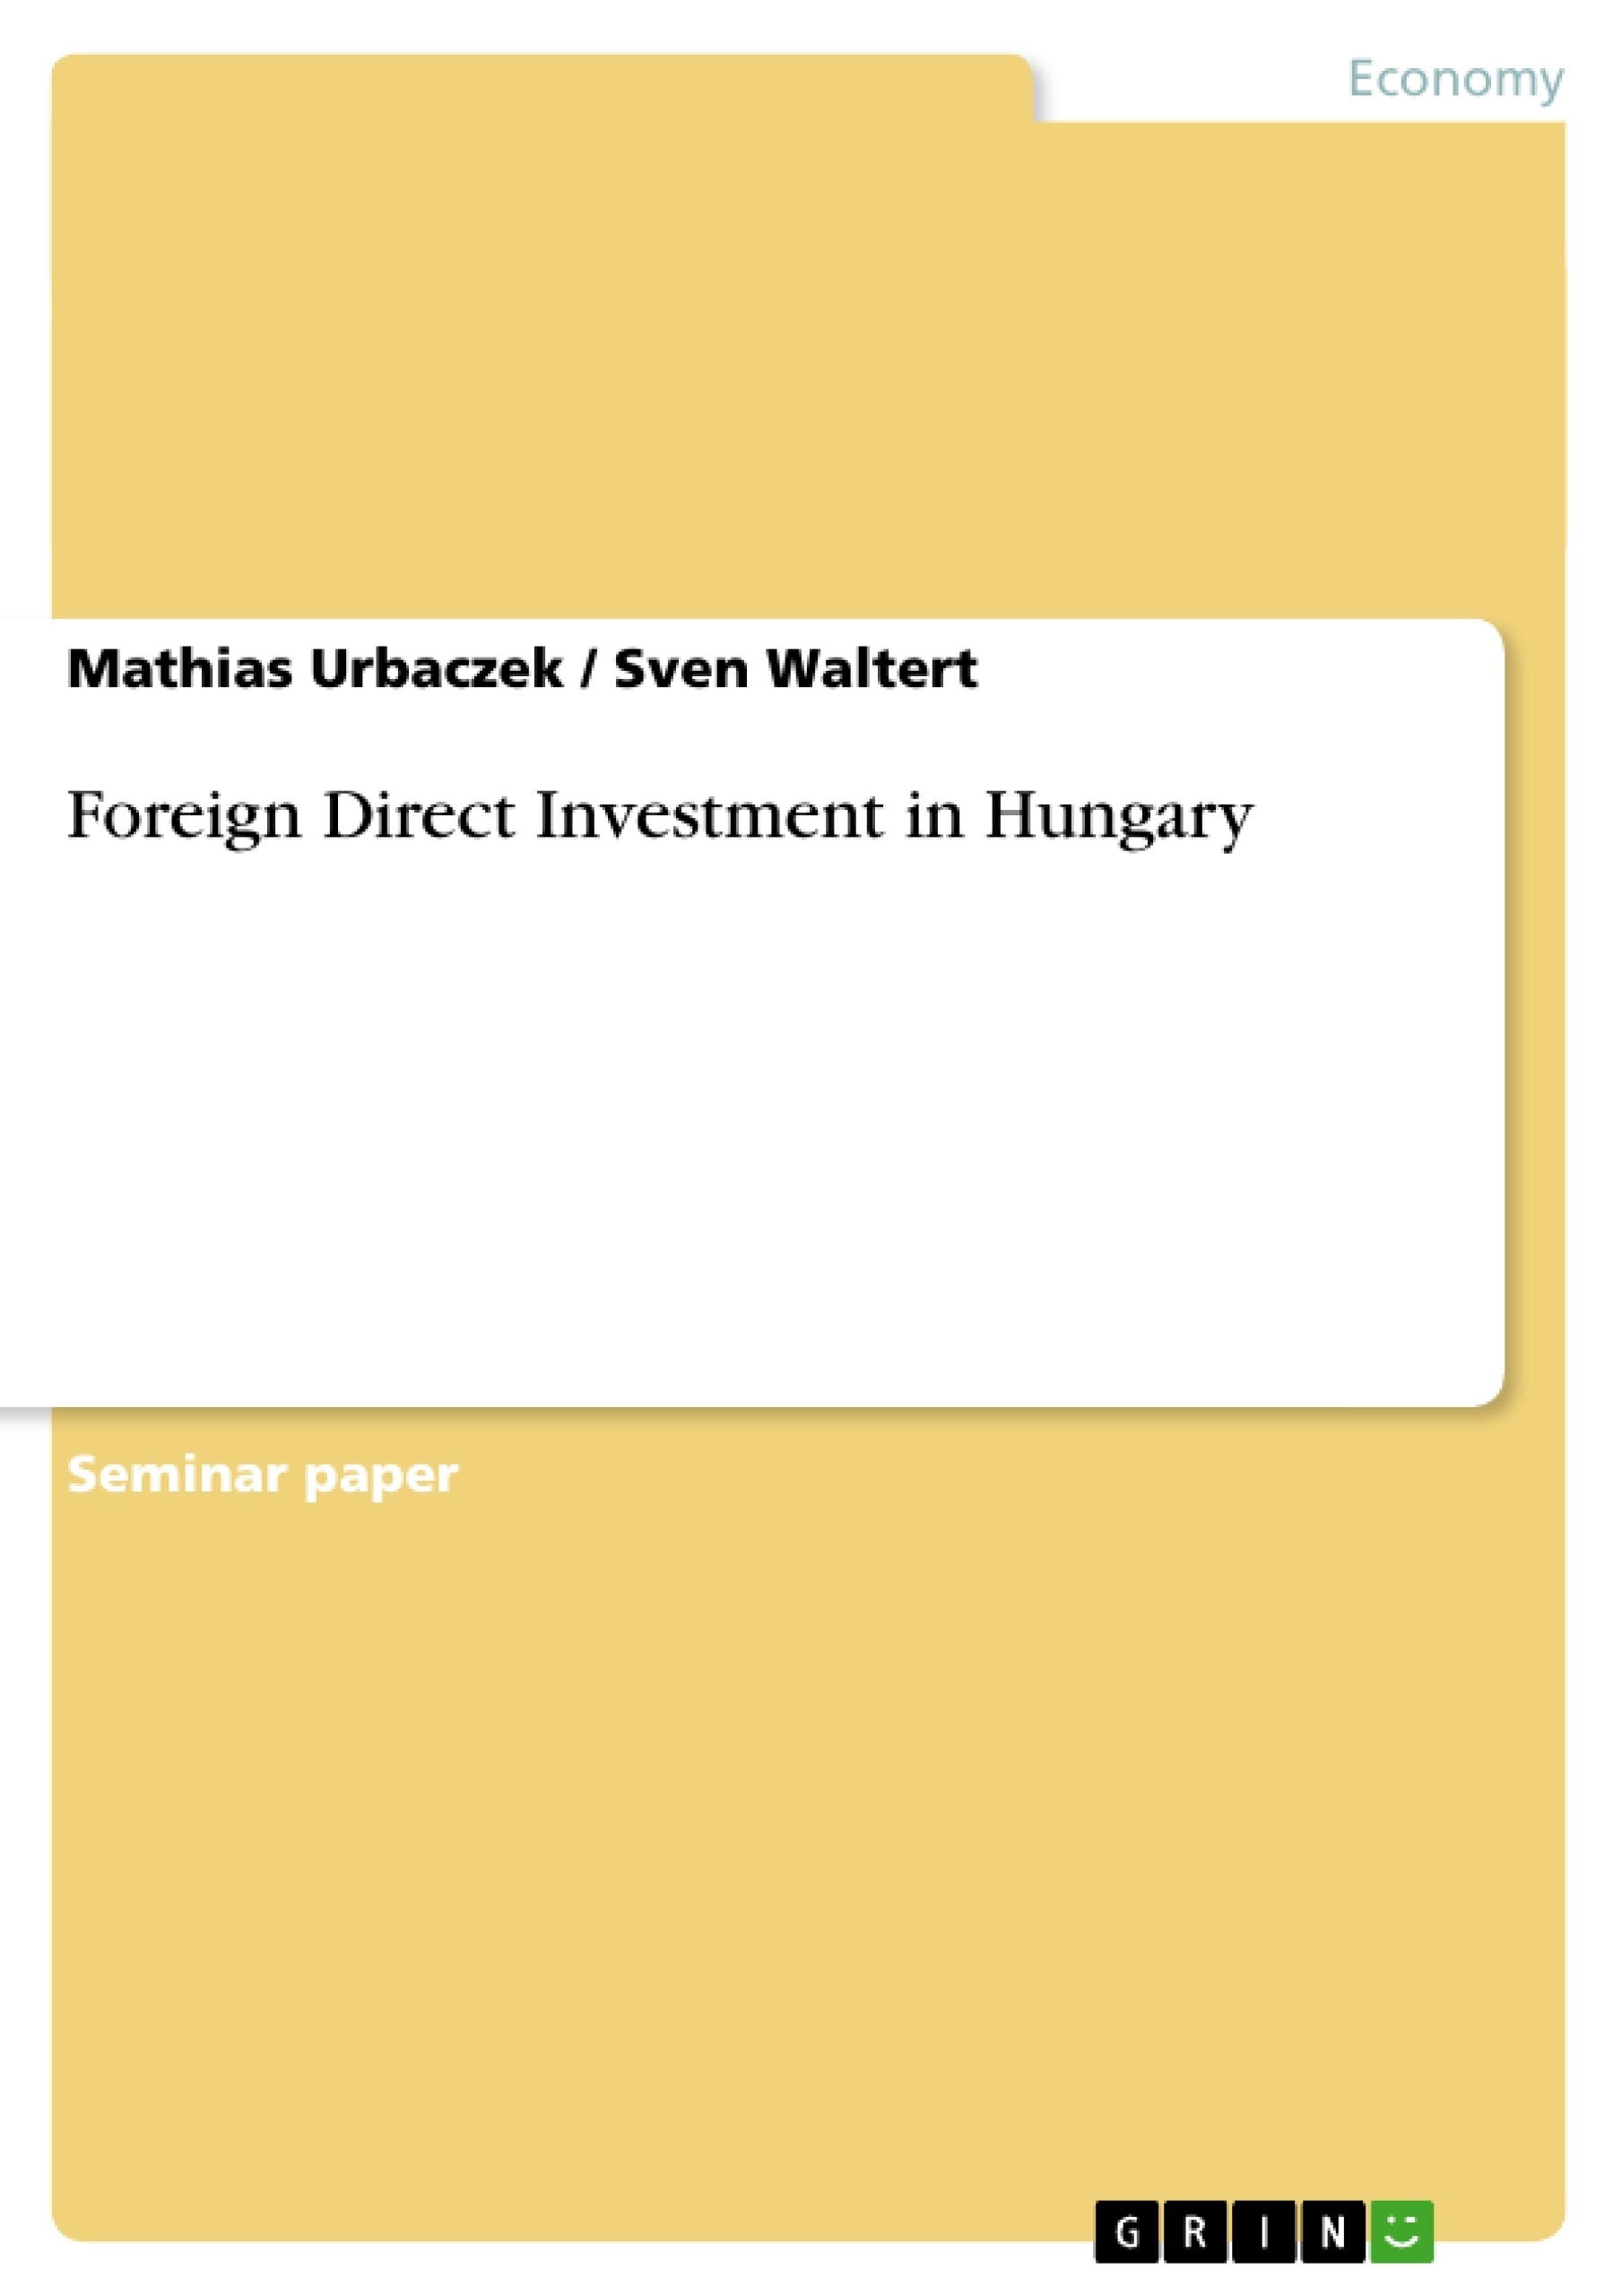 Title: Foreign Direct Investment in Hungary